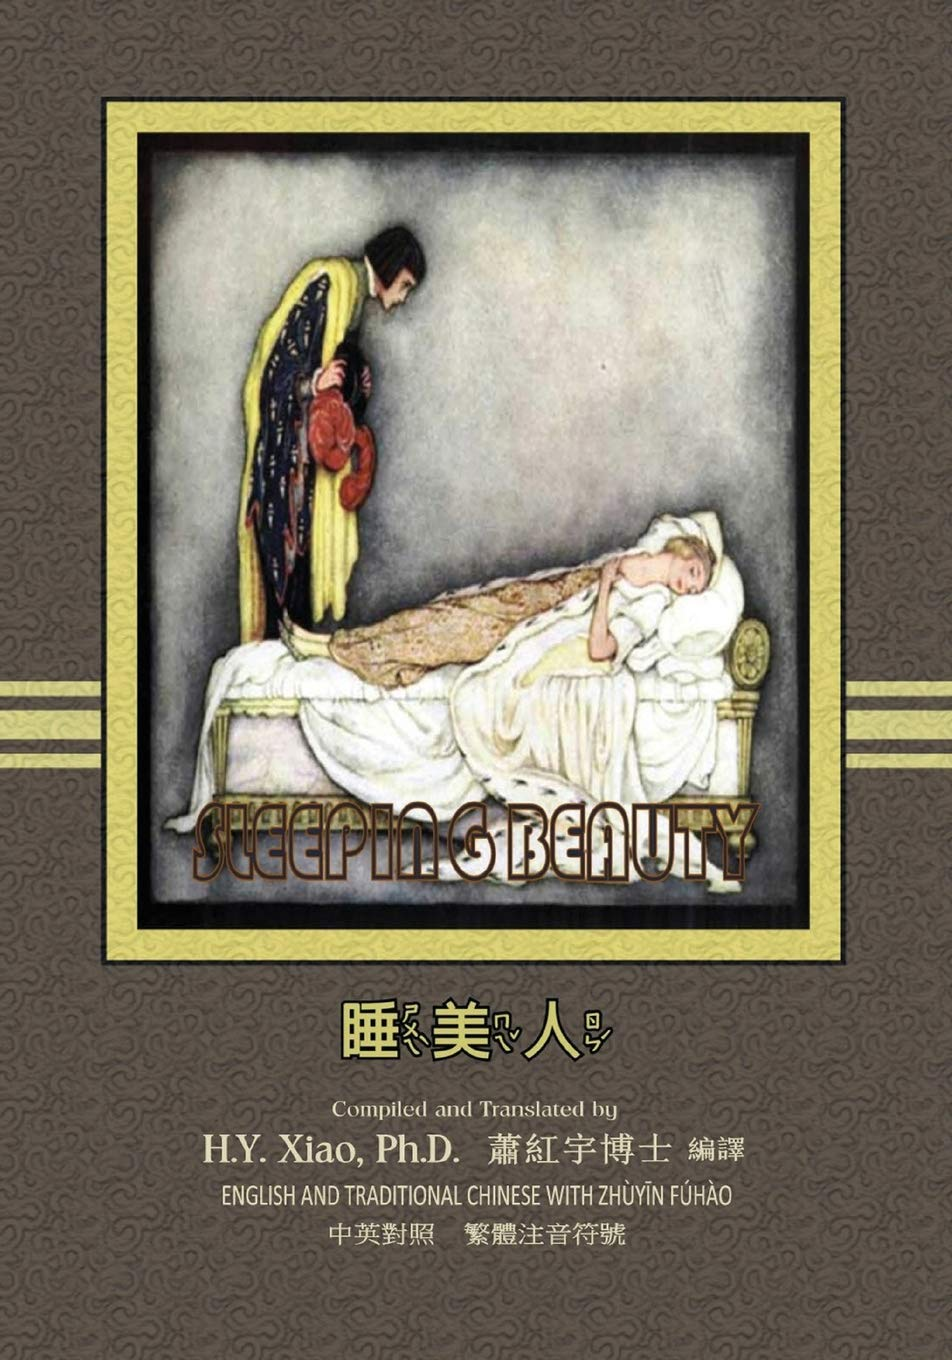 Download The Sleeping Beauty (Traditional Chinese): 02 Zhuyin Fuhao (Bopomofo) Paperback B&W (Favorite Fairy Tales) (Volume 15) (Chinese Edition) pdf